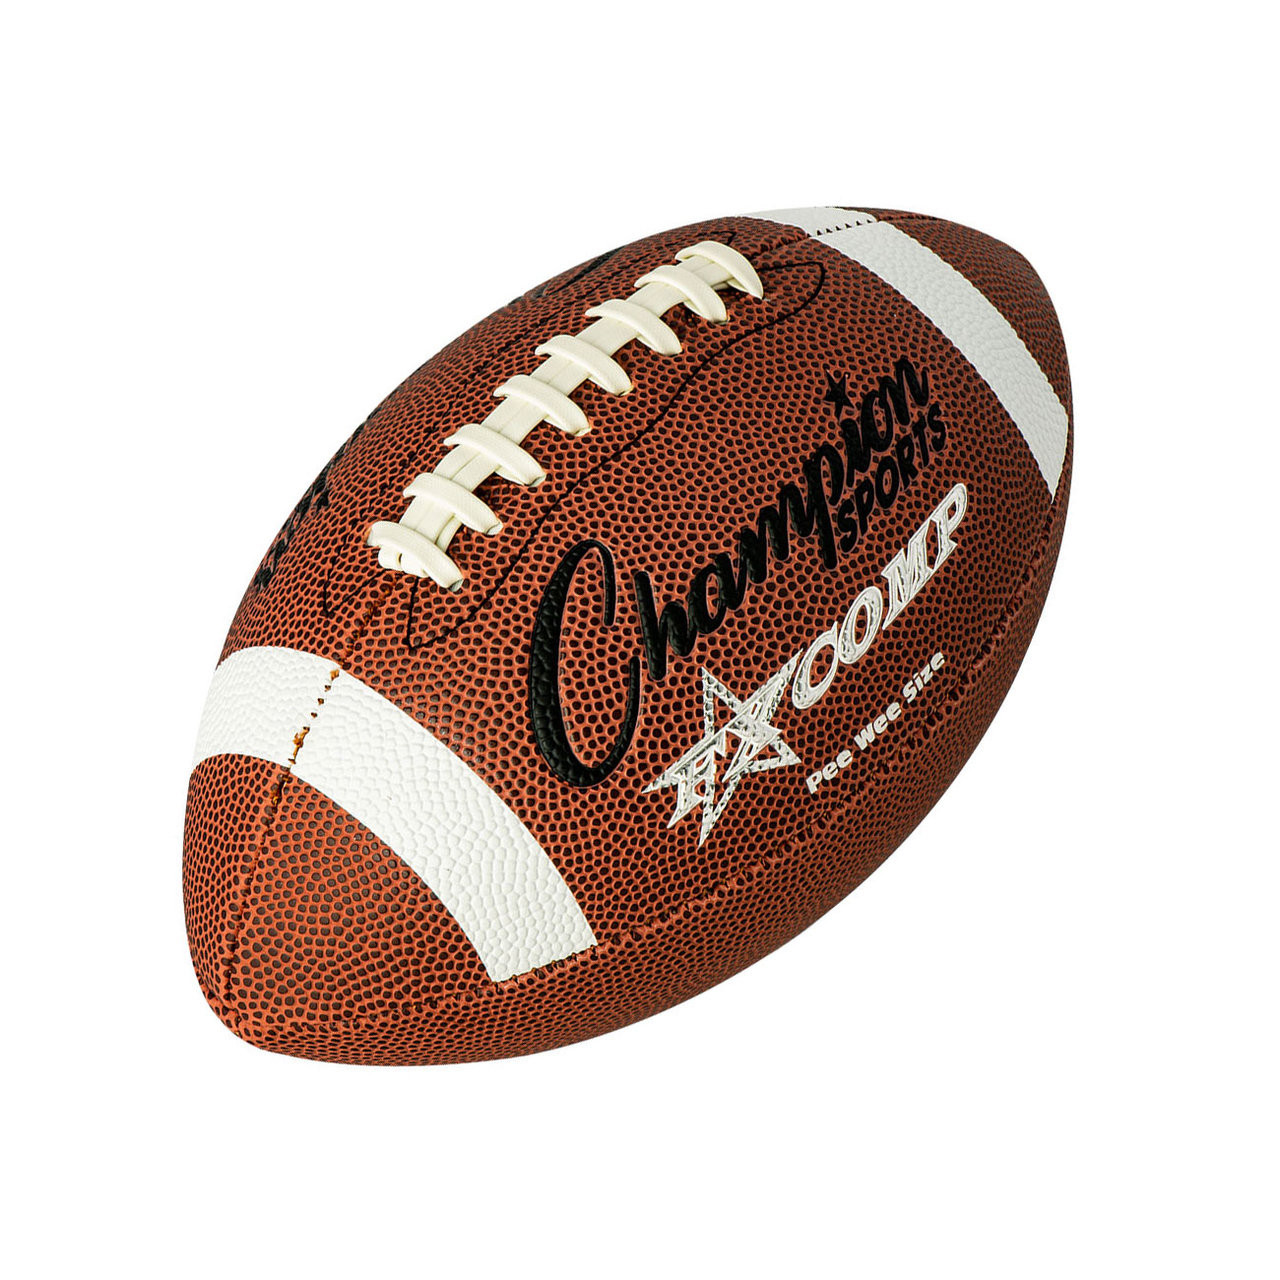 Champion Sports FX Series Composite Football